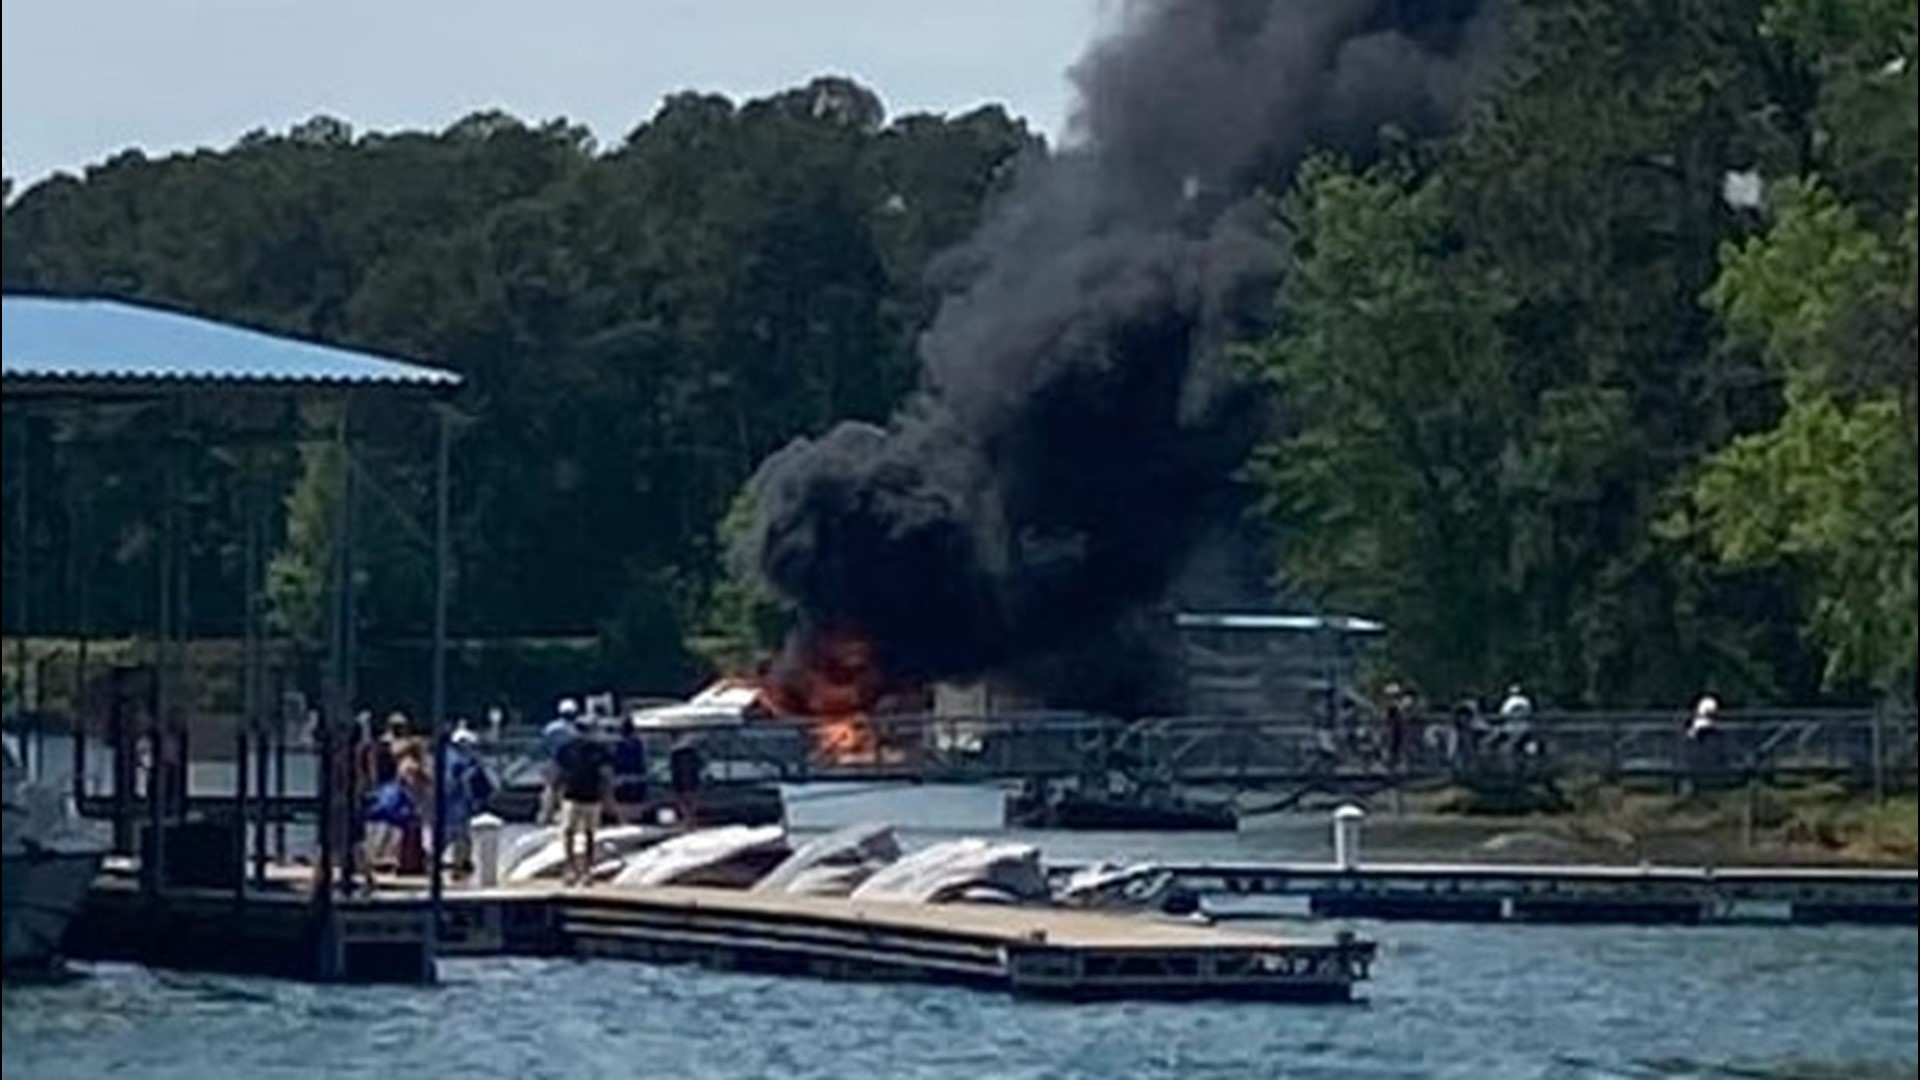 Two teenagers among injured in Georgia boat explosion